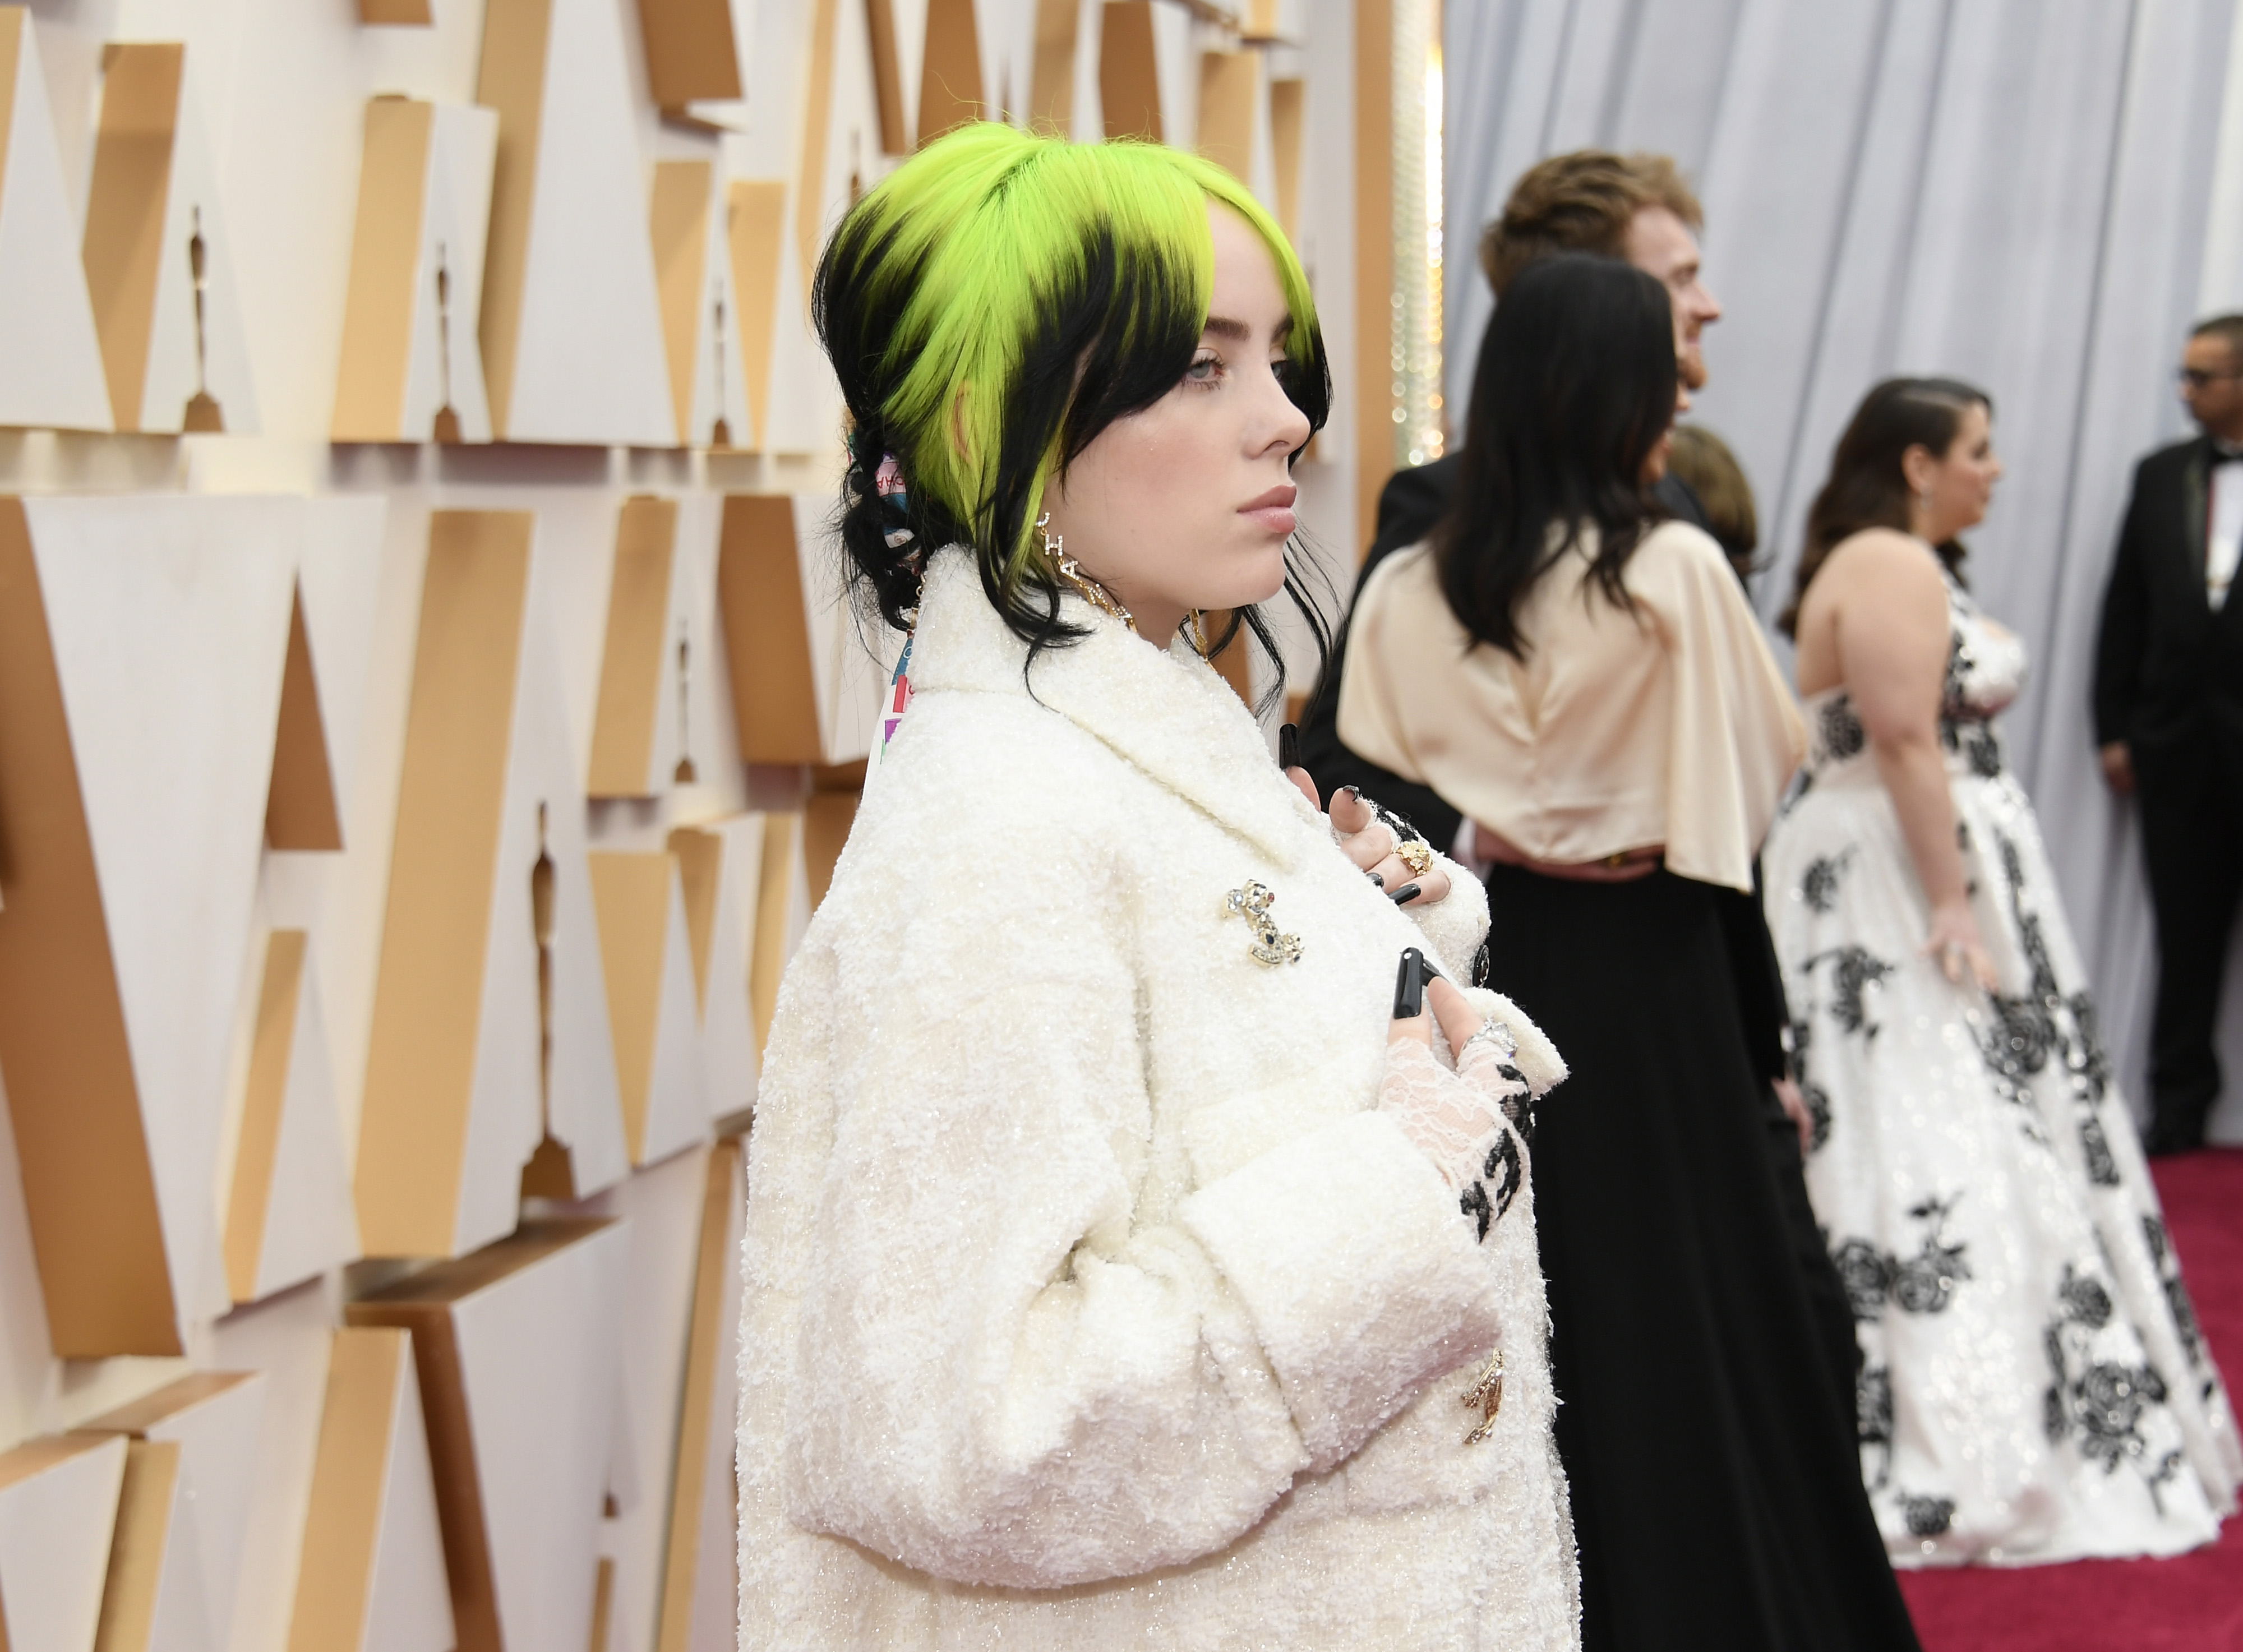 HOLLYWOOD, CALIFORNIA - FEBRUARY 09: Billie Eilish attends the 92nd Annual Academy Awards at Hollywood and Highland on February 09, 2020 in Hollywood, California. (Photo by Kevork Djansezian/Getty Images)